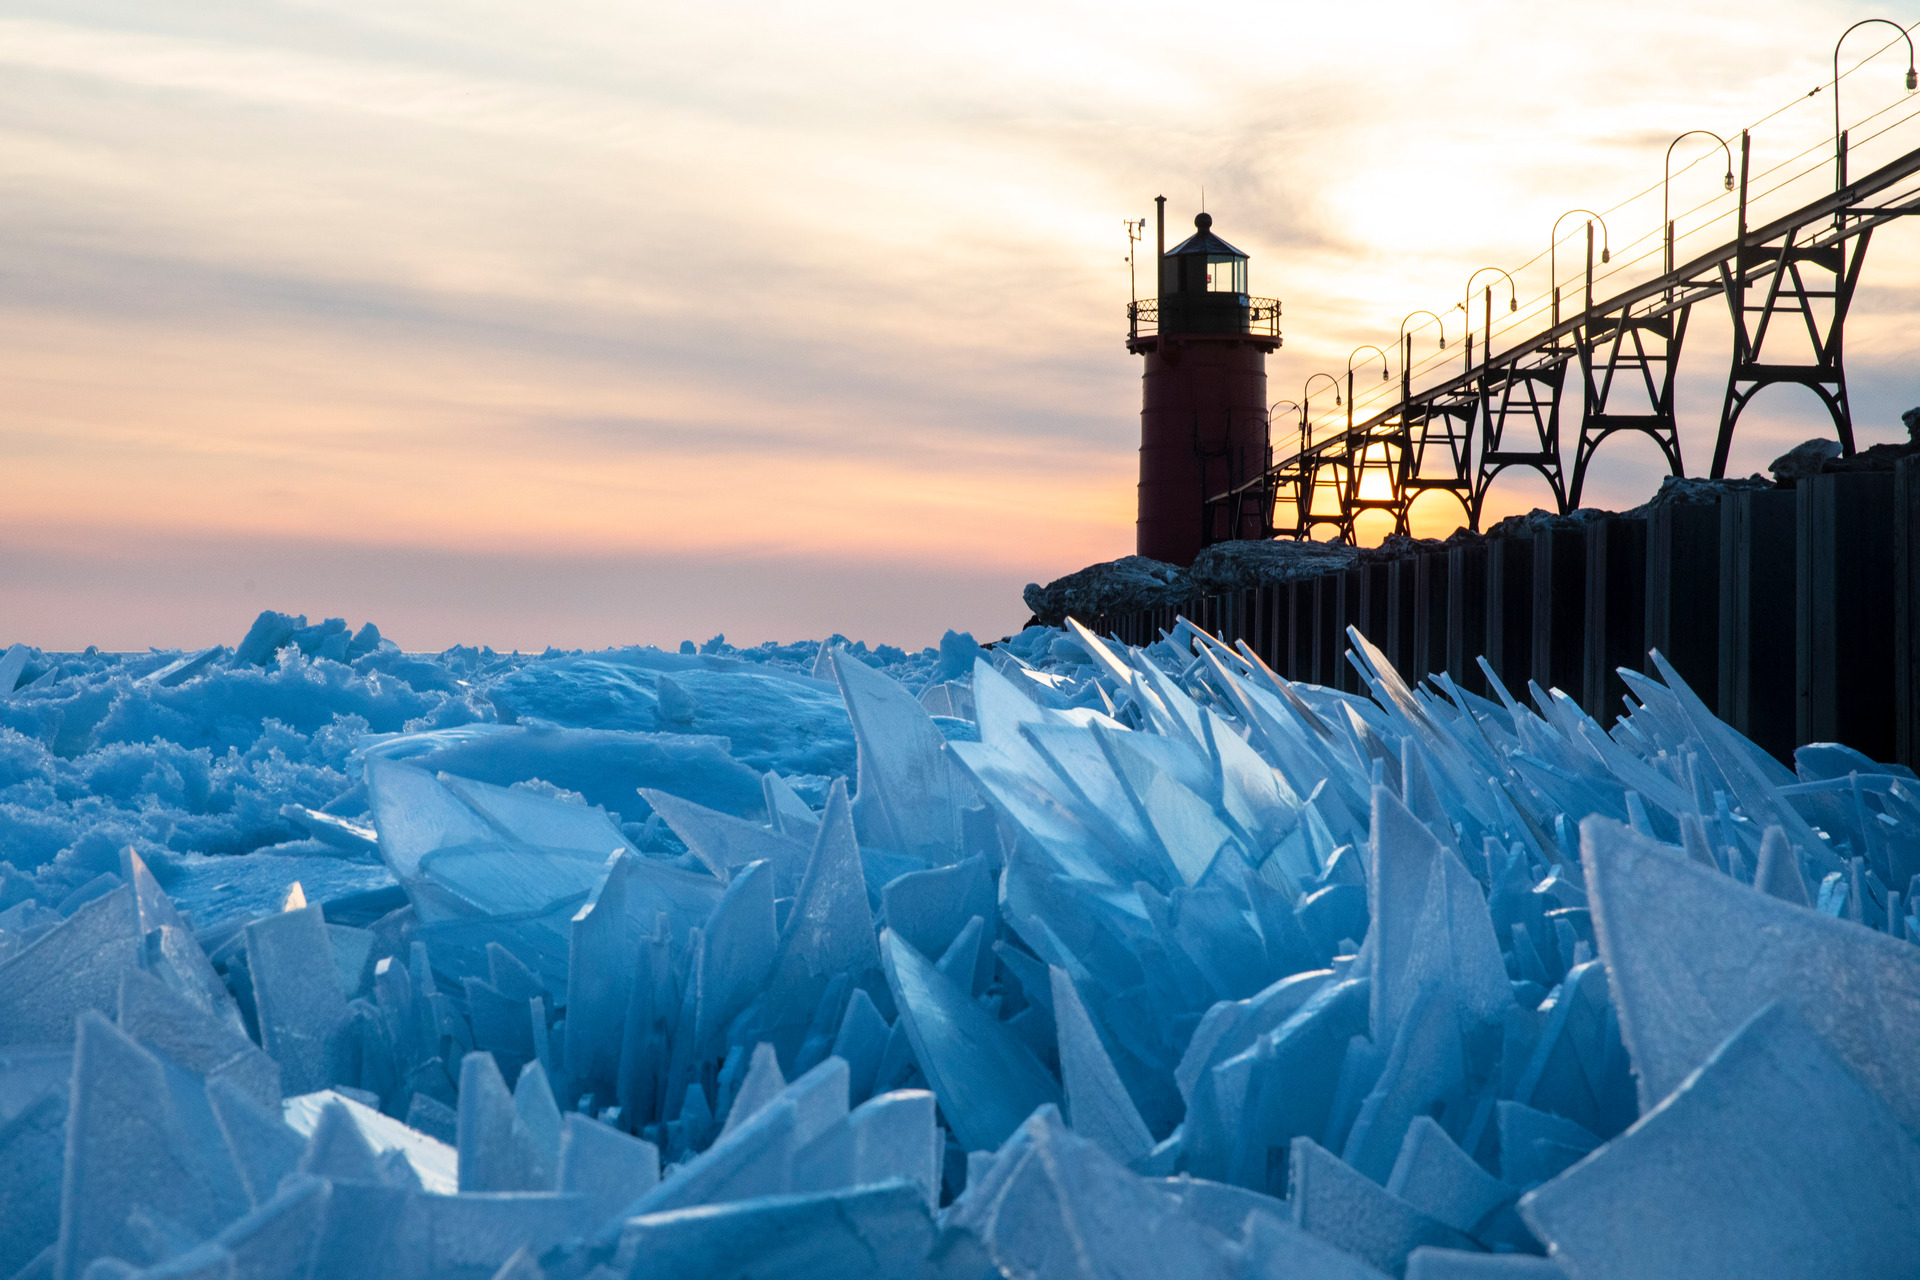 Incredible photos: Frozen lake Michigan shatters into stunning ice shards